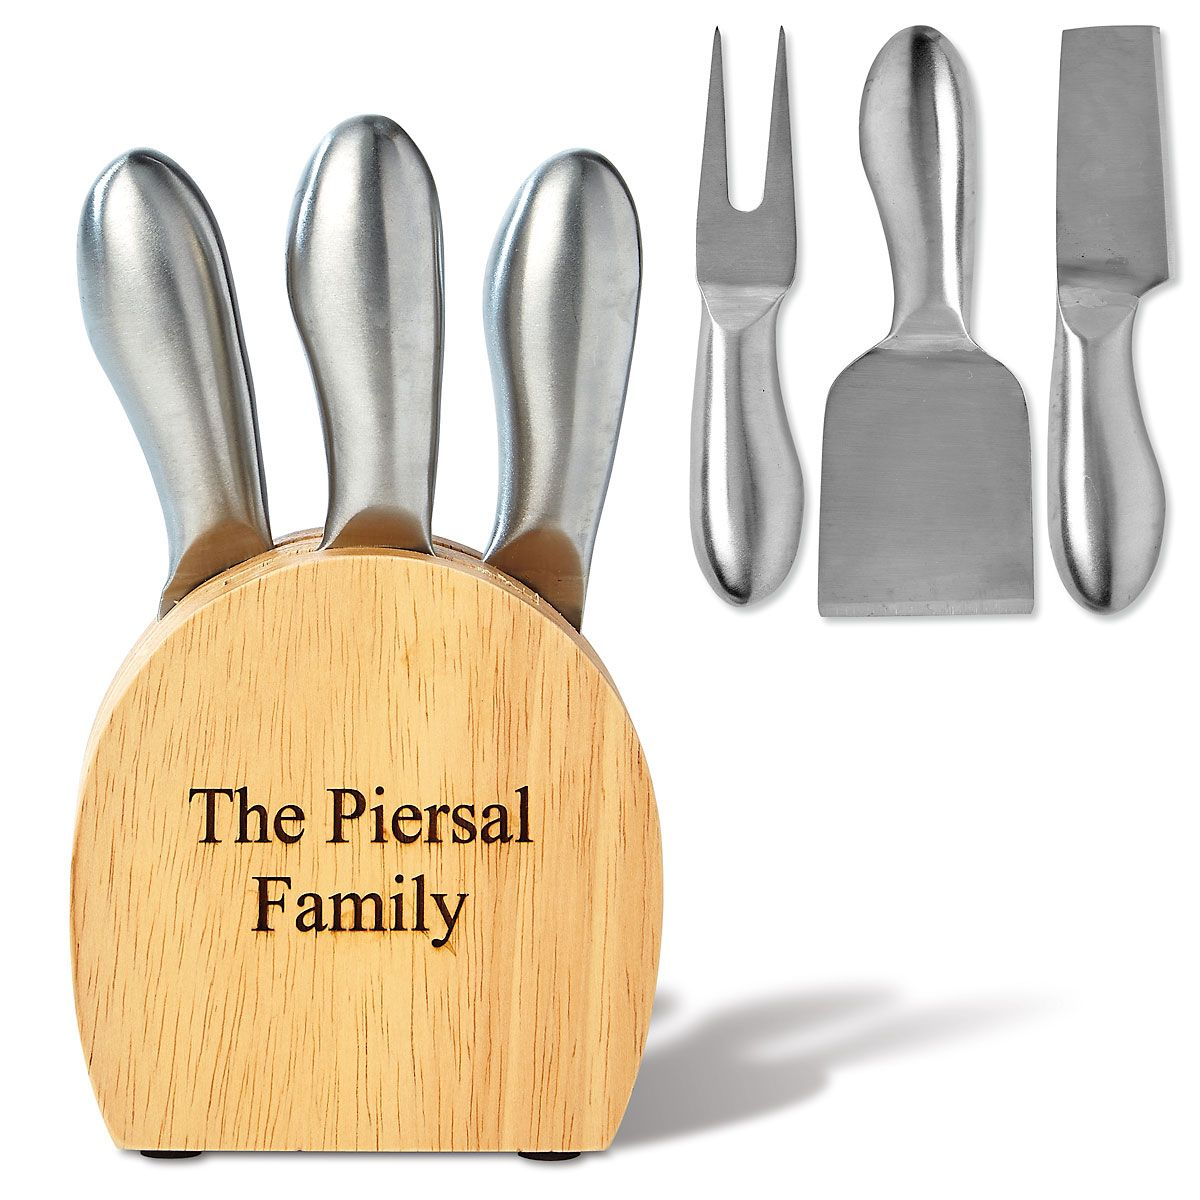 Personalized Wooden Cheese Block & Utensils